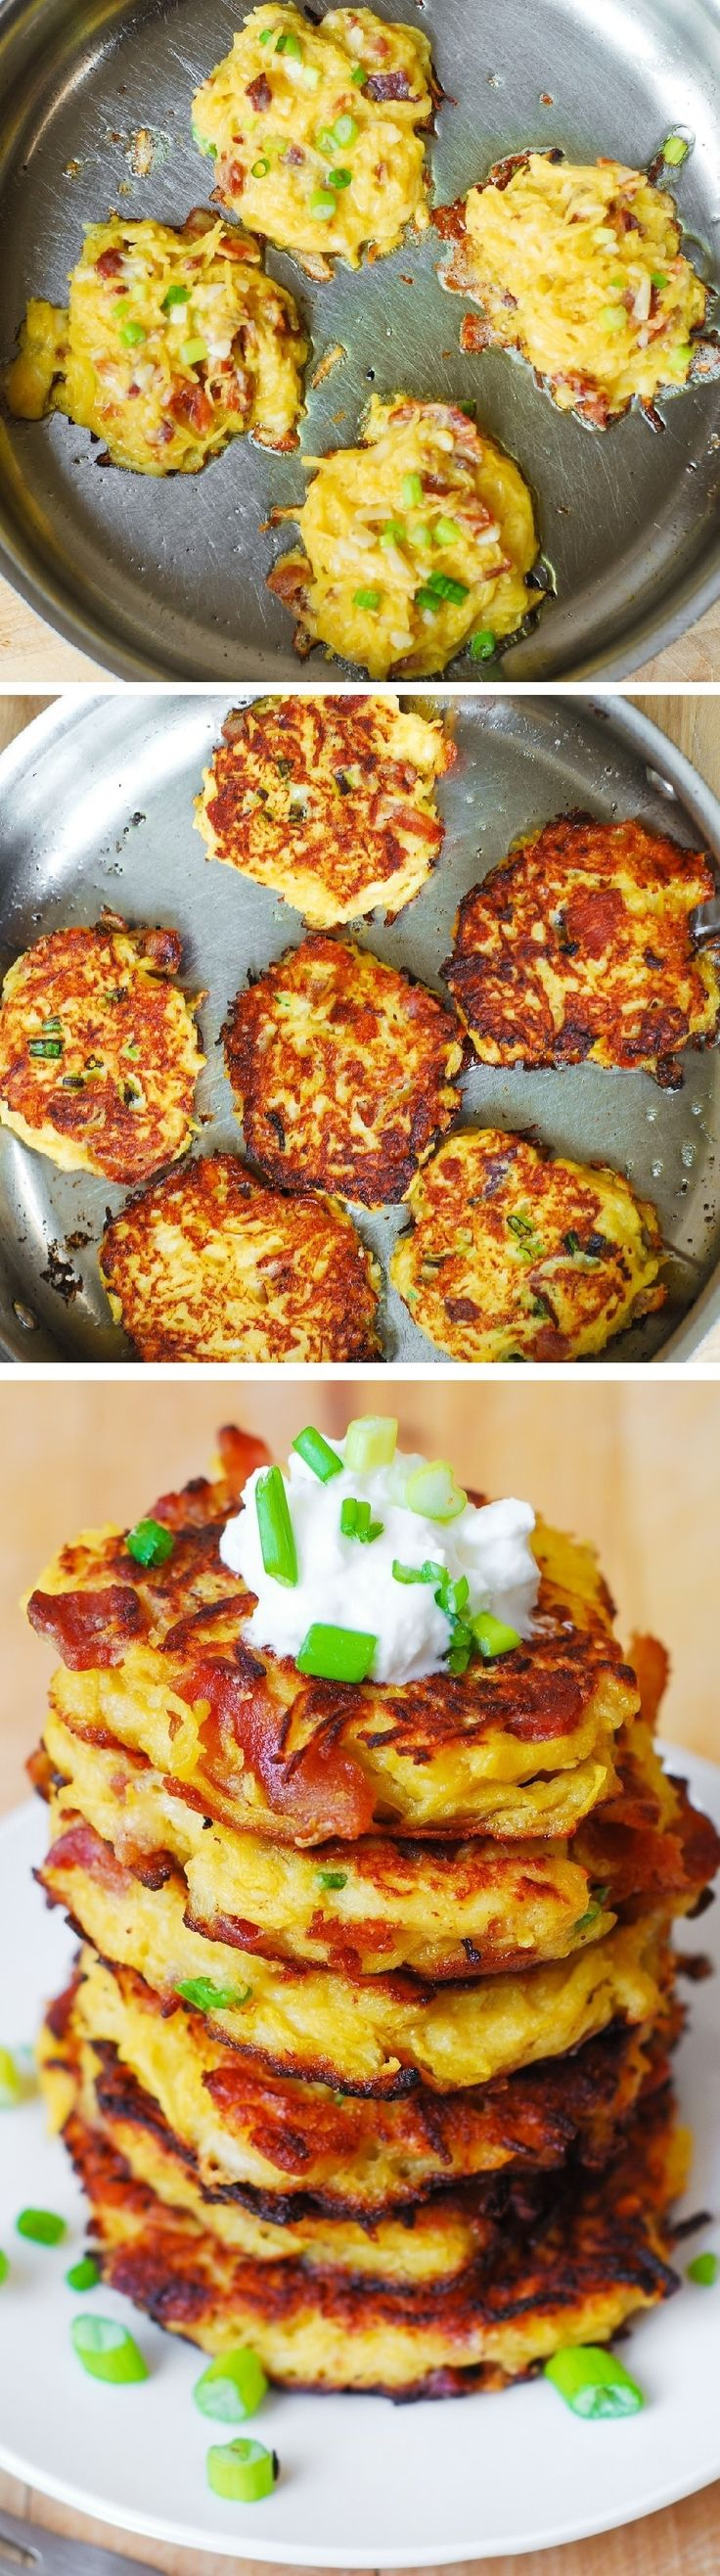 Bacon, Spaghetti Squash, and Parmesan Fritters. So unbelievably good! Kids love these - what a great way to incorporate veggies! Serve with a dollop of Greek yogurt. JuliasAlbum.com  #snacks #appetizers